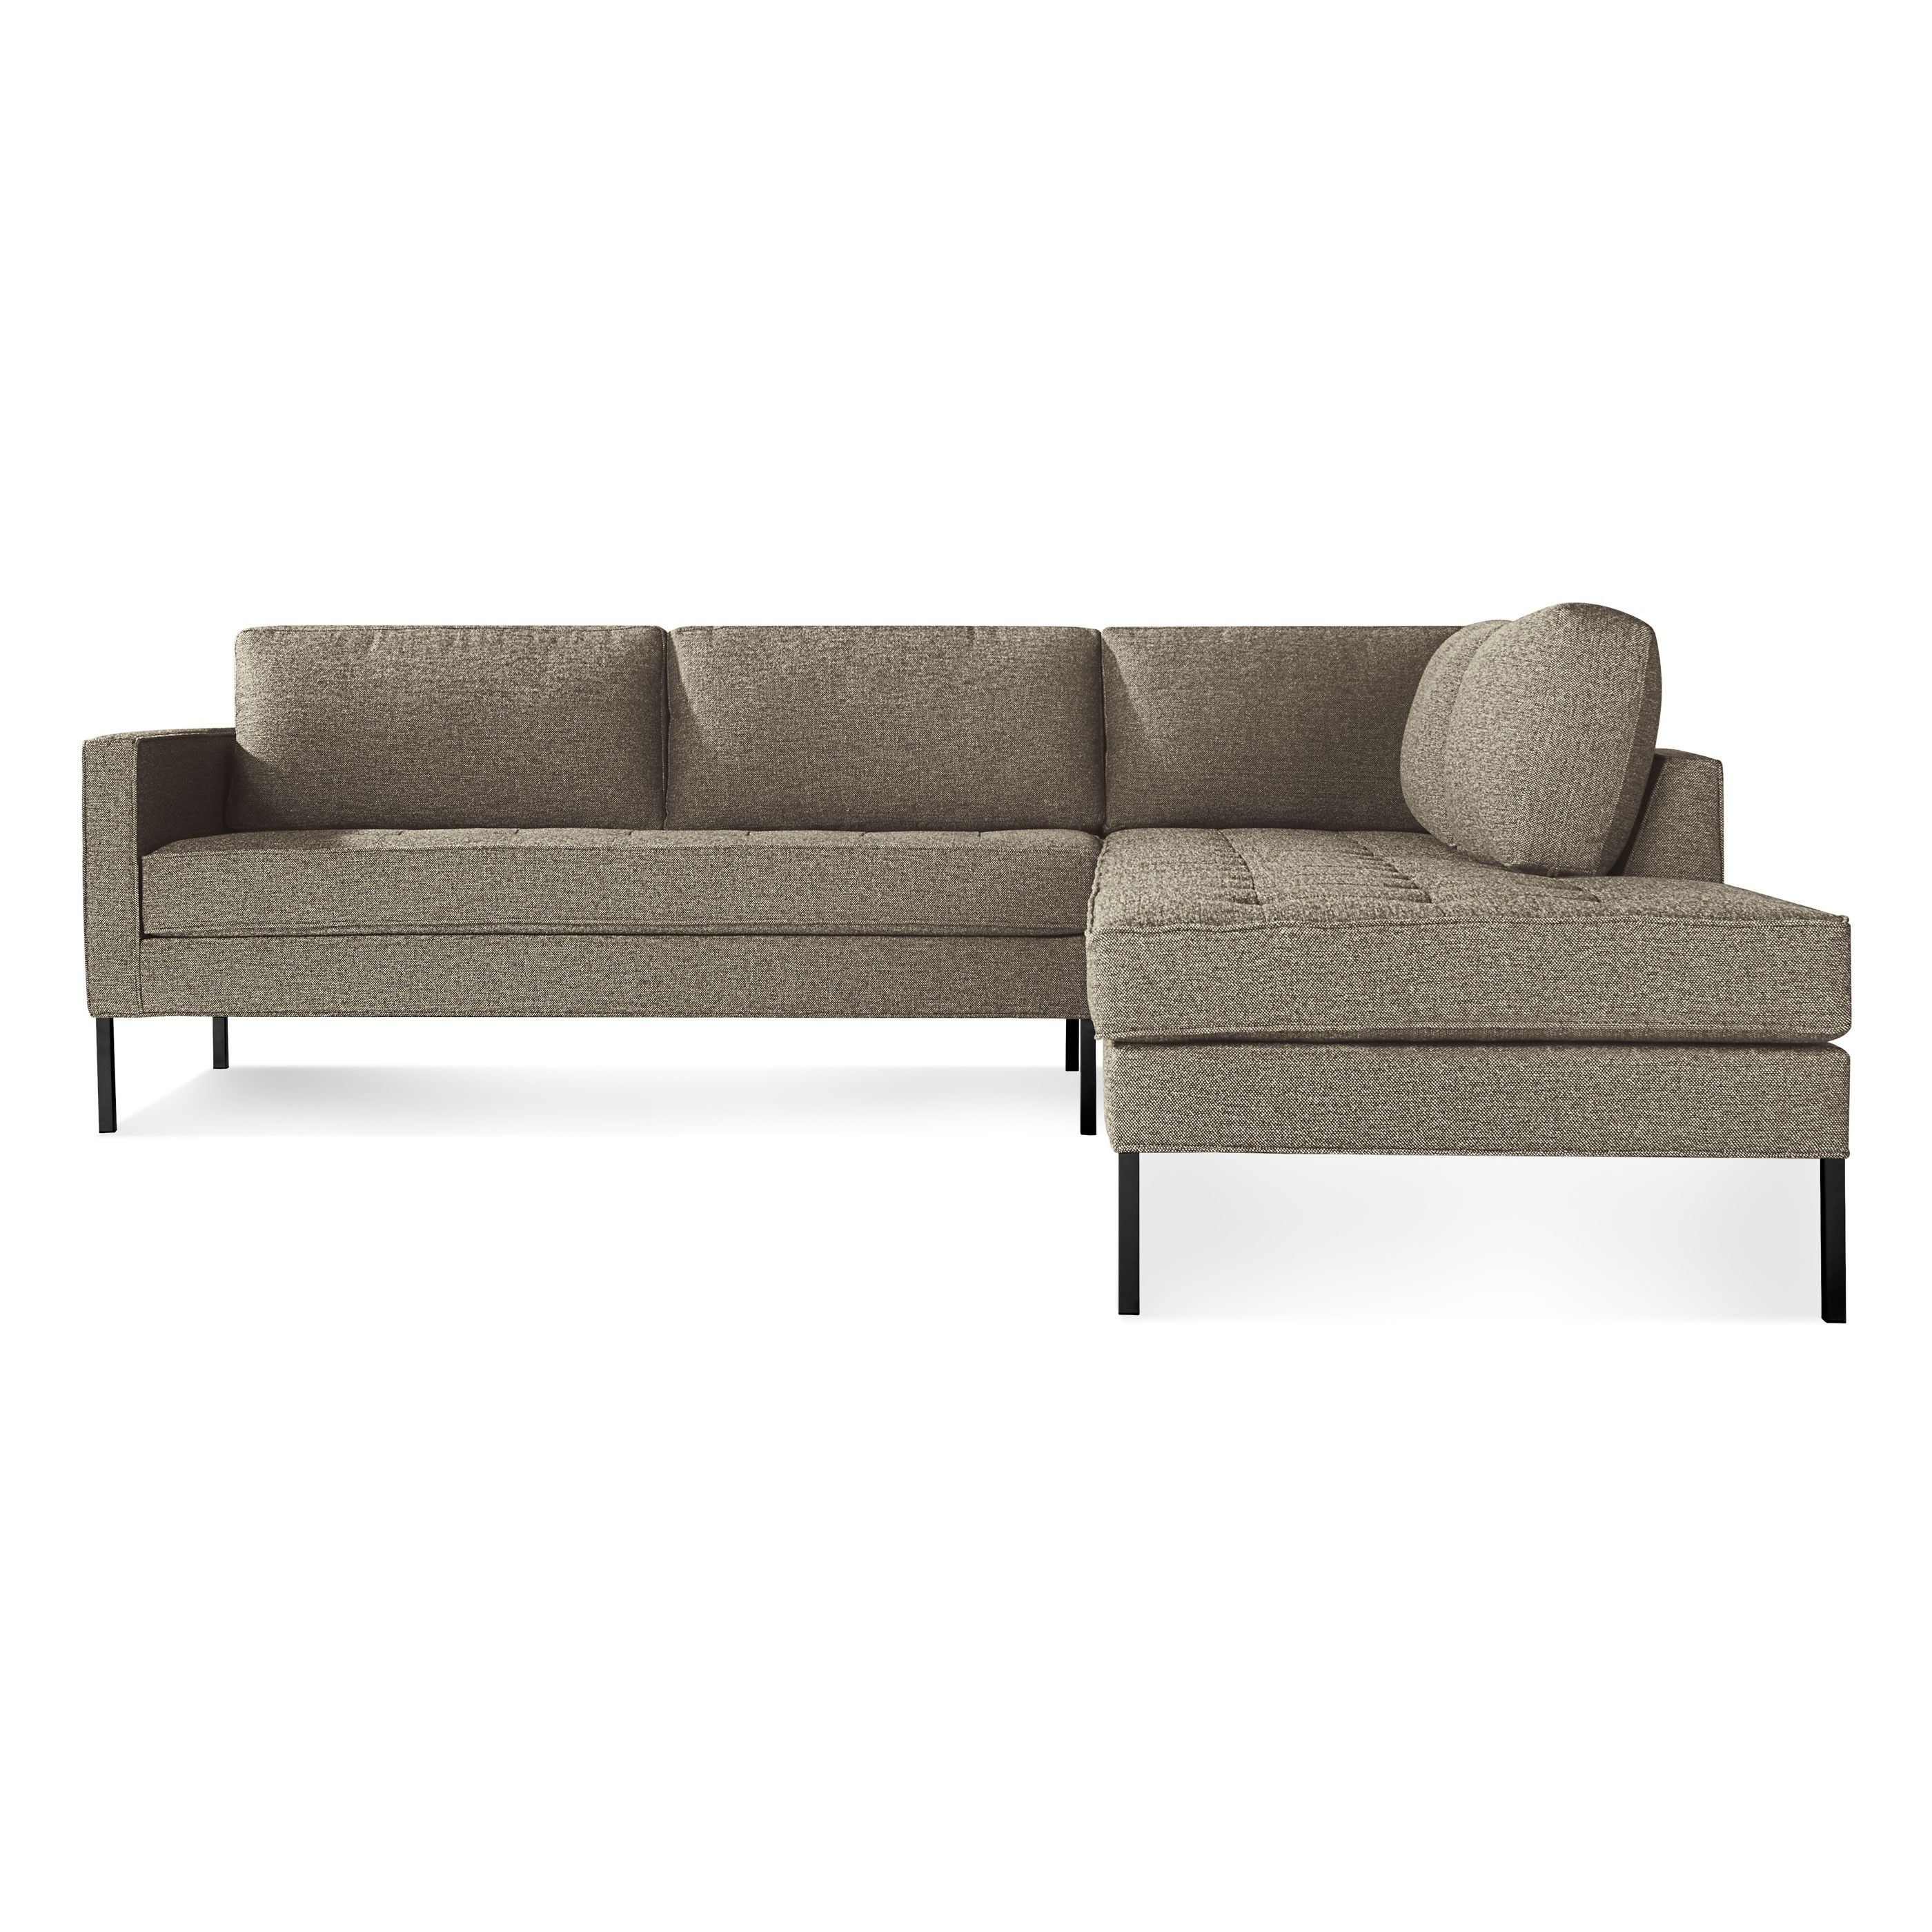 Bludot Black Metal Legs Dary Grey Upholstery 3 598 Without Discount Could Definitely Meet Lead Times Sectional Sofa